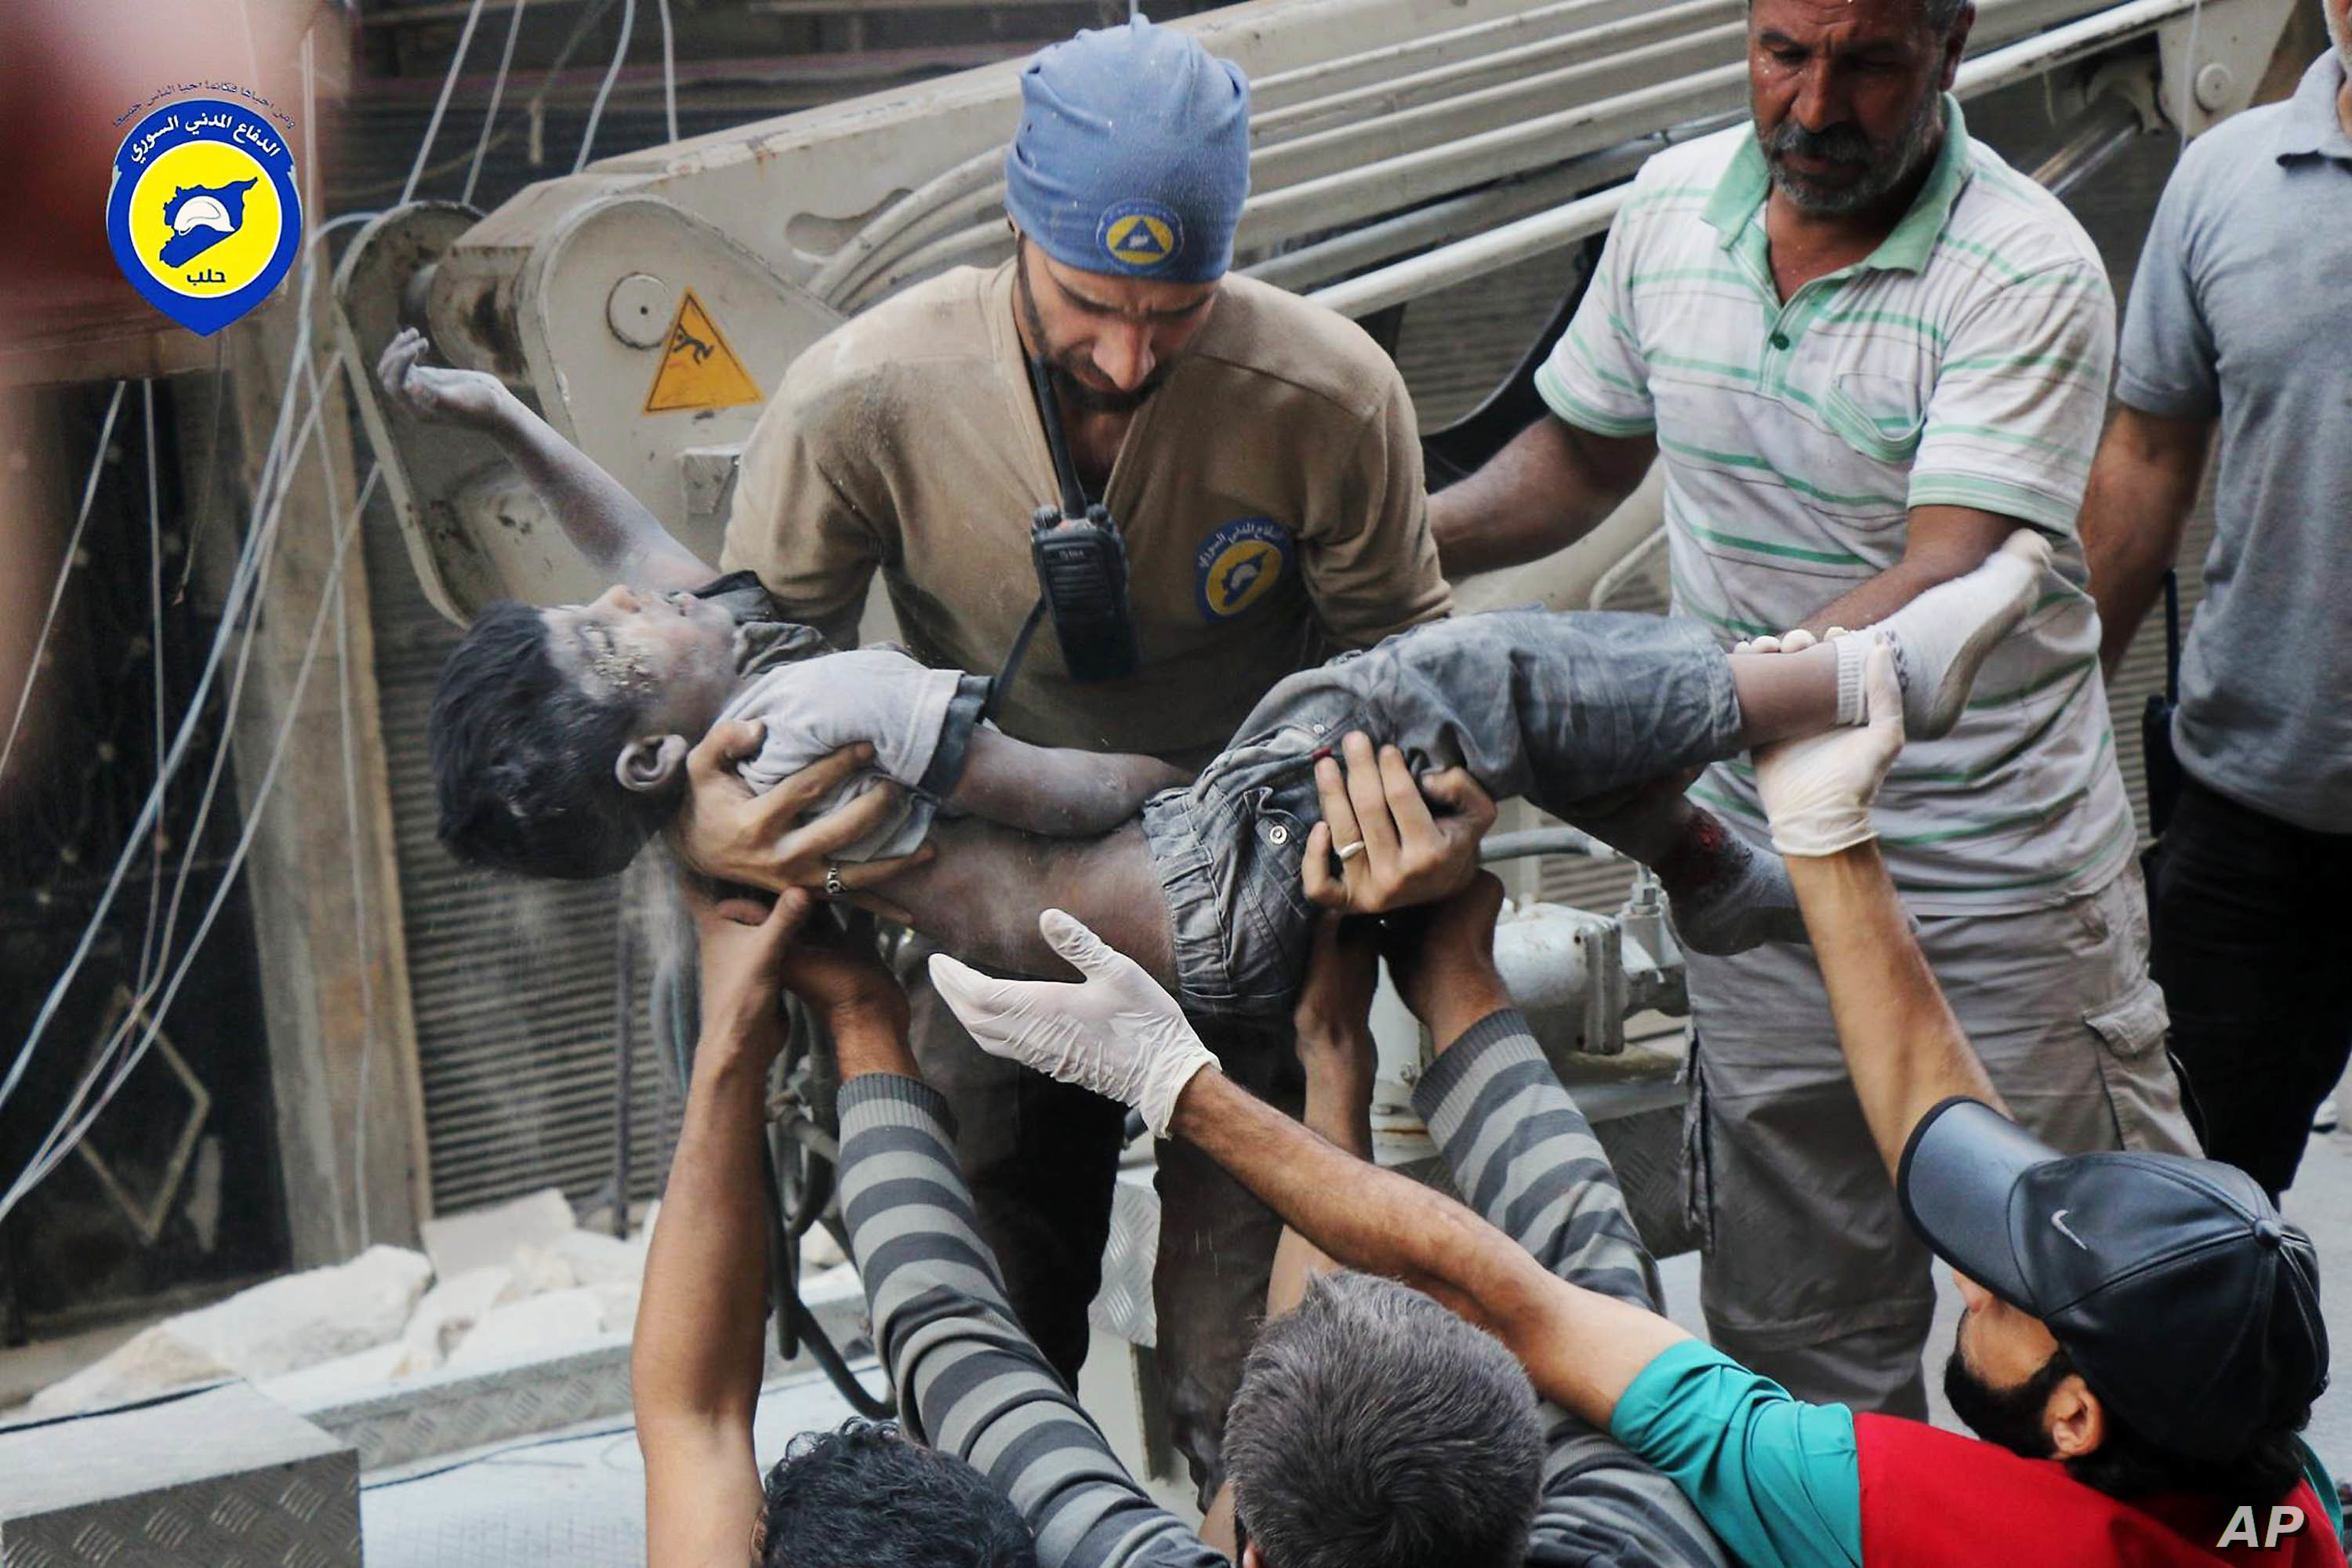 Sept. 27, 2016 photo, provided by the Syrian Civil Defense group known as the White Helmets, shows a Civil Defense worker carrying the body of a child after airstrikes hit al-Shaar neighborhood in Aleppo, Syria.